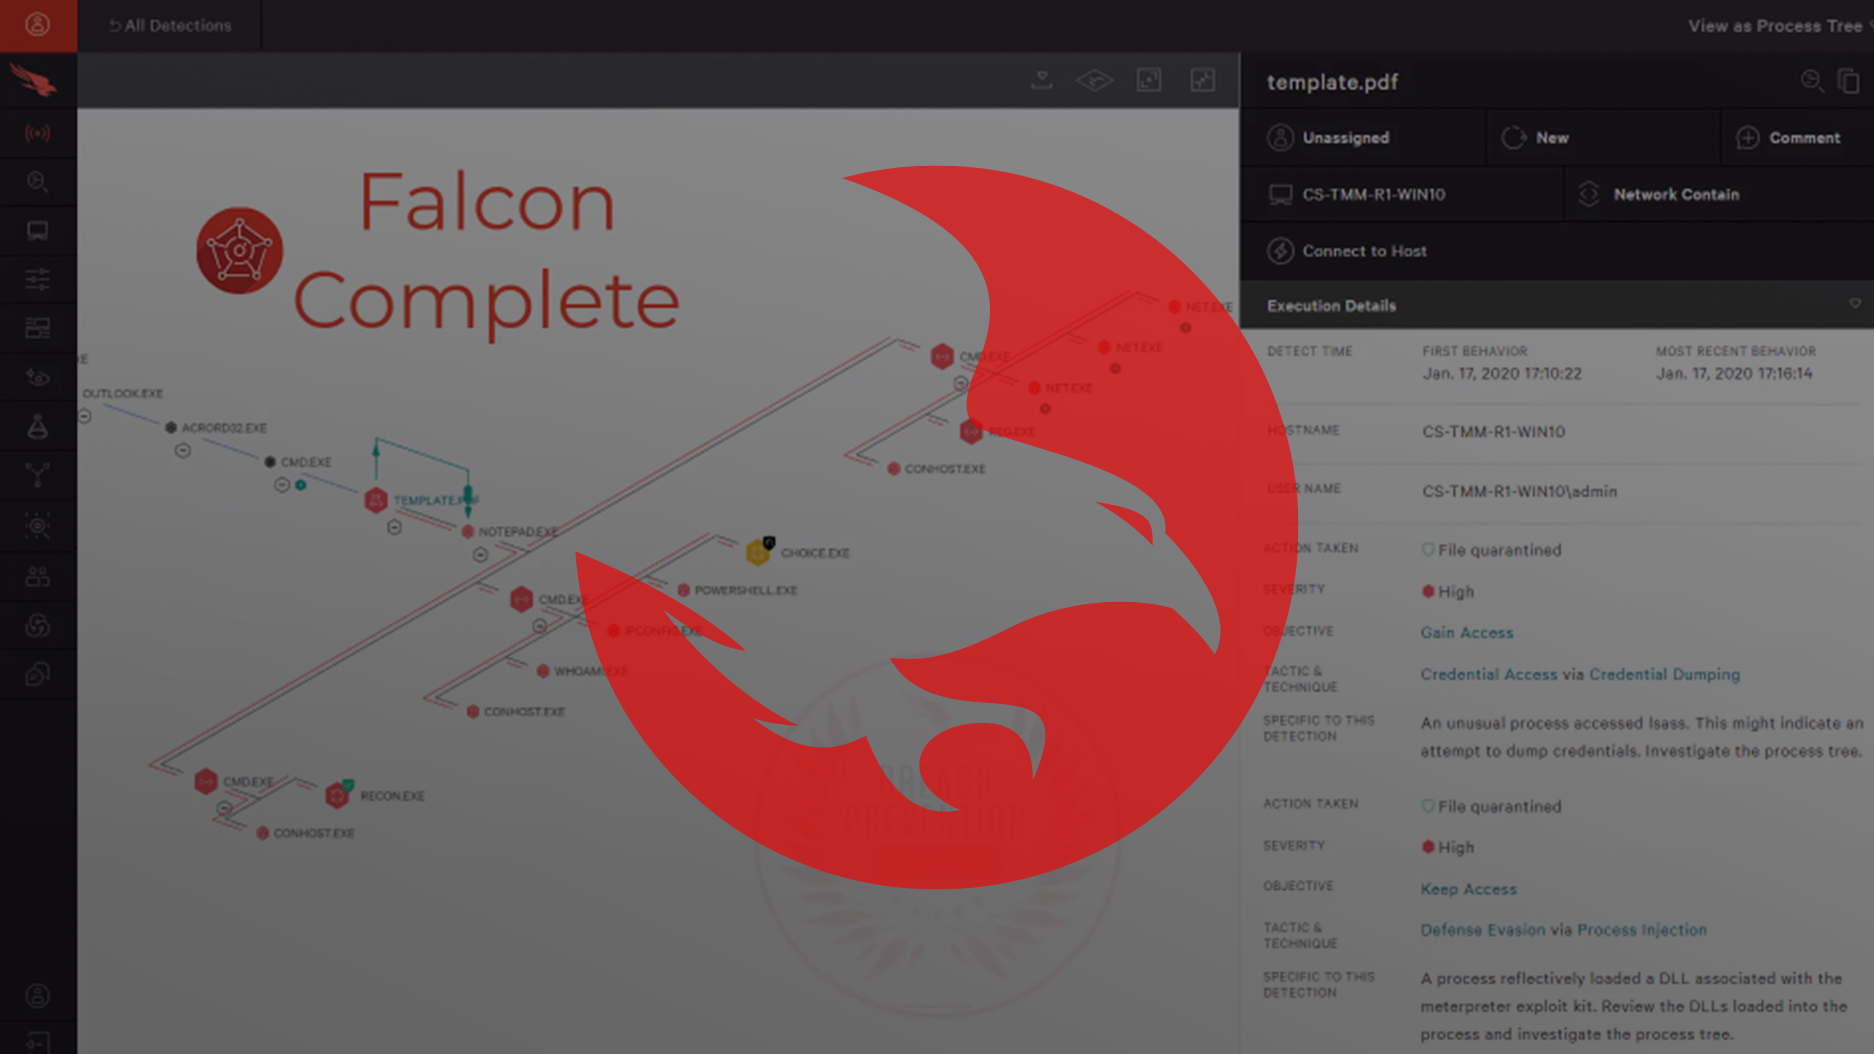 CrowdStrike Falcon Platform Overview